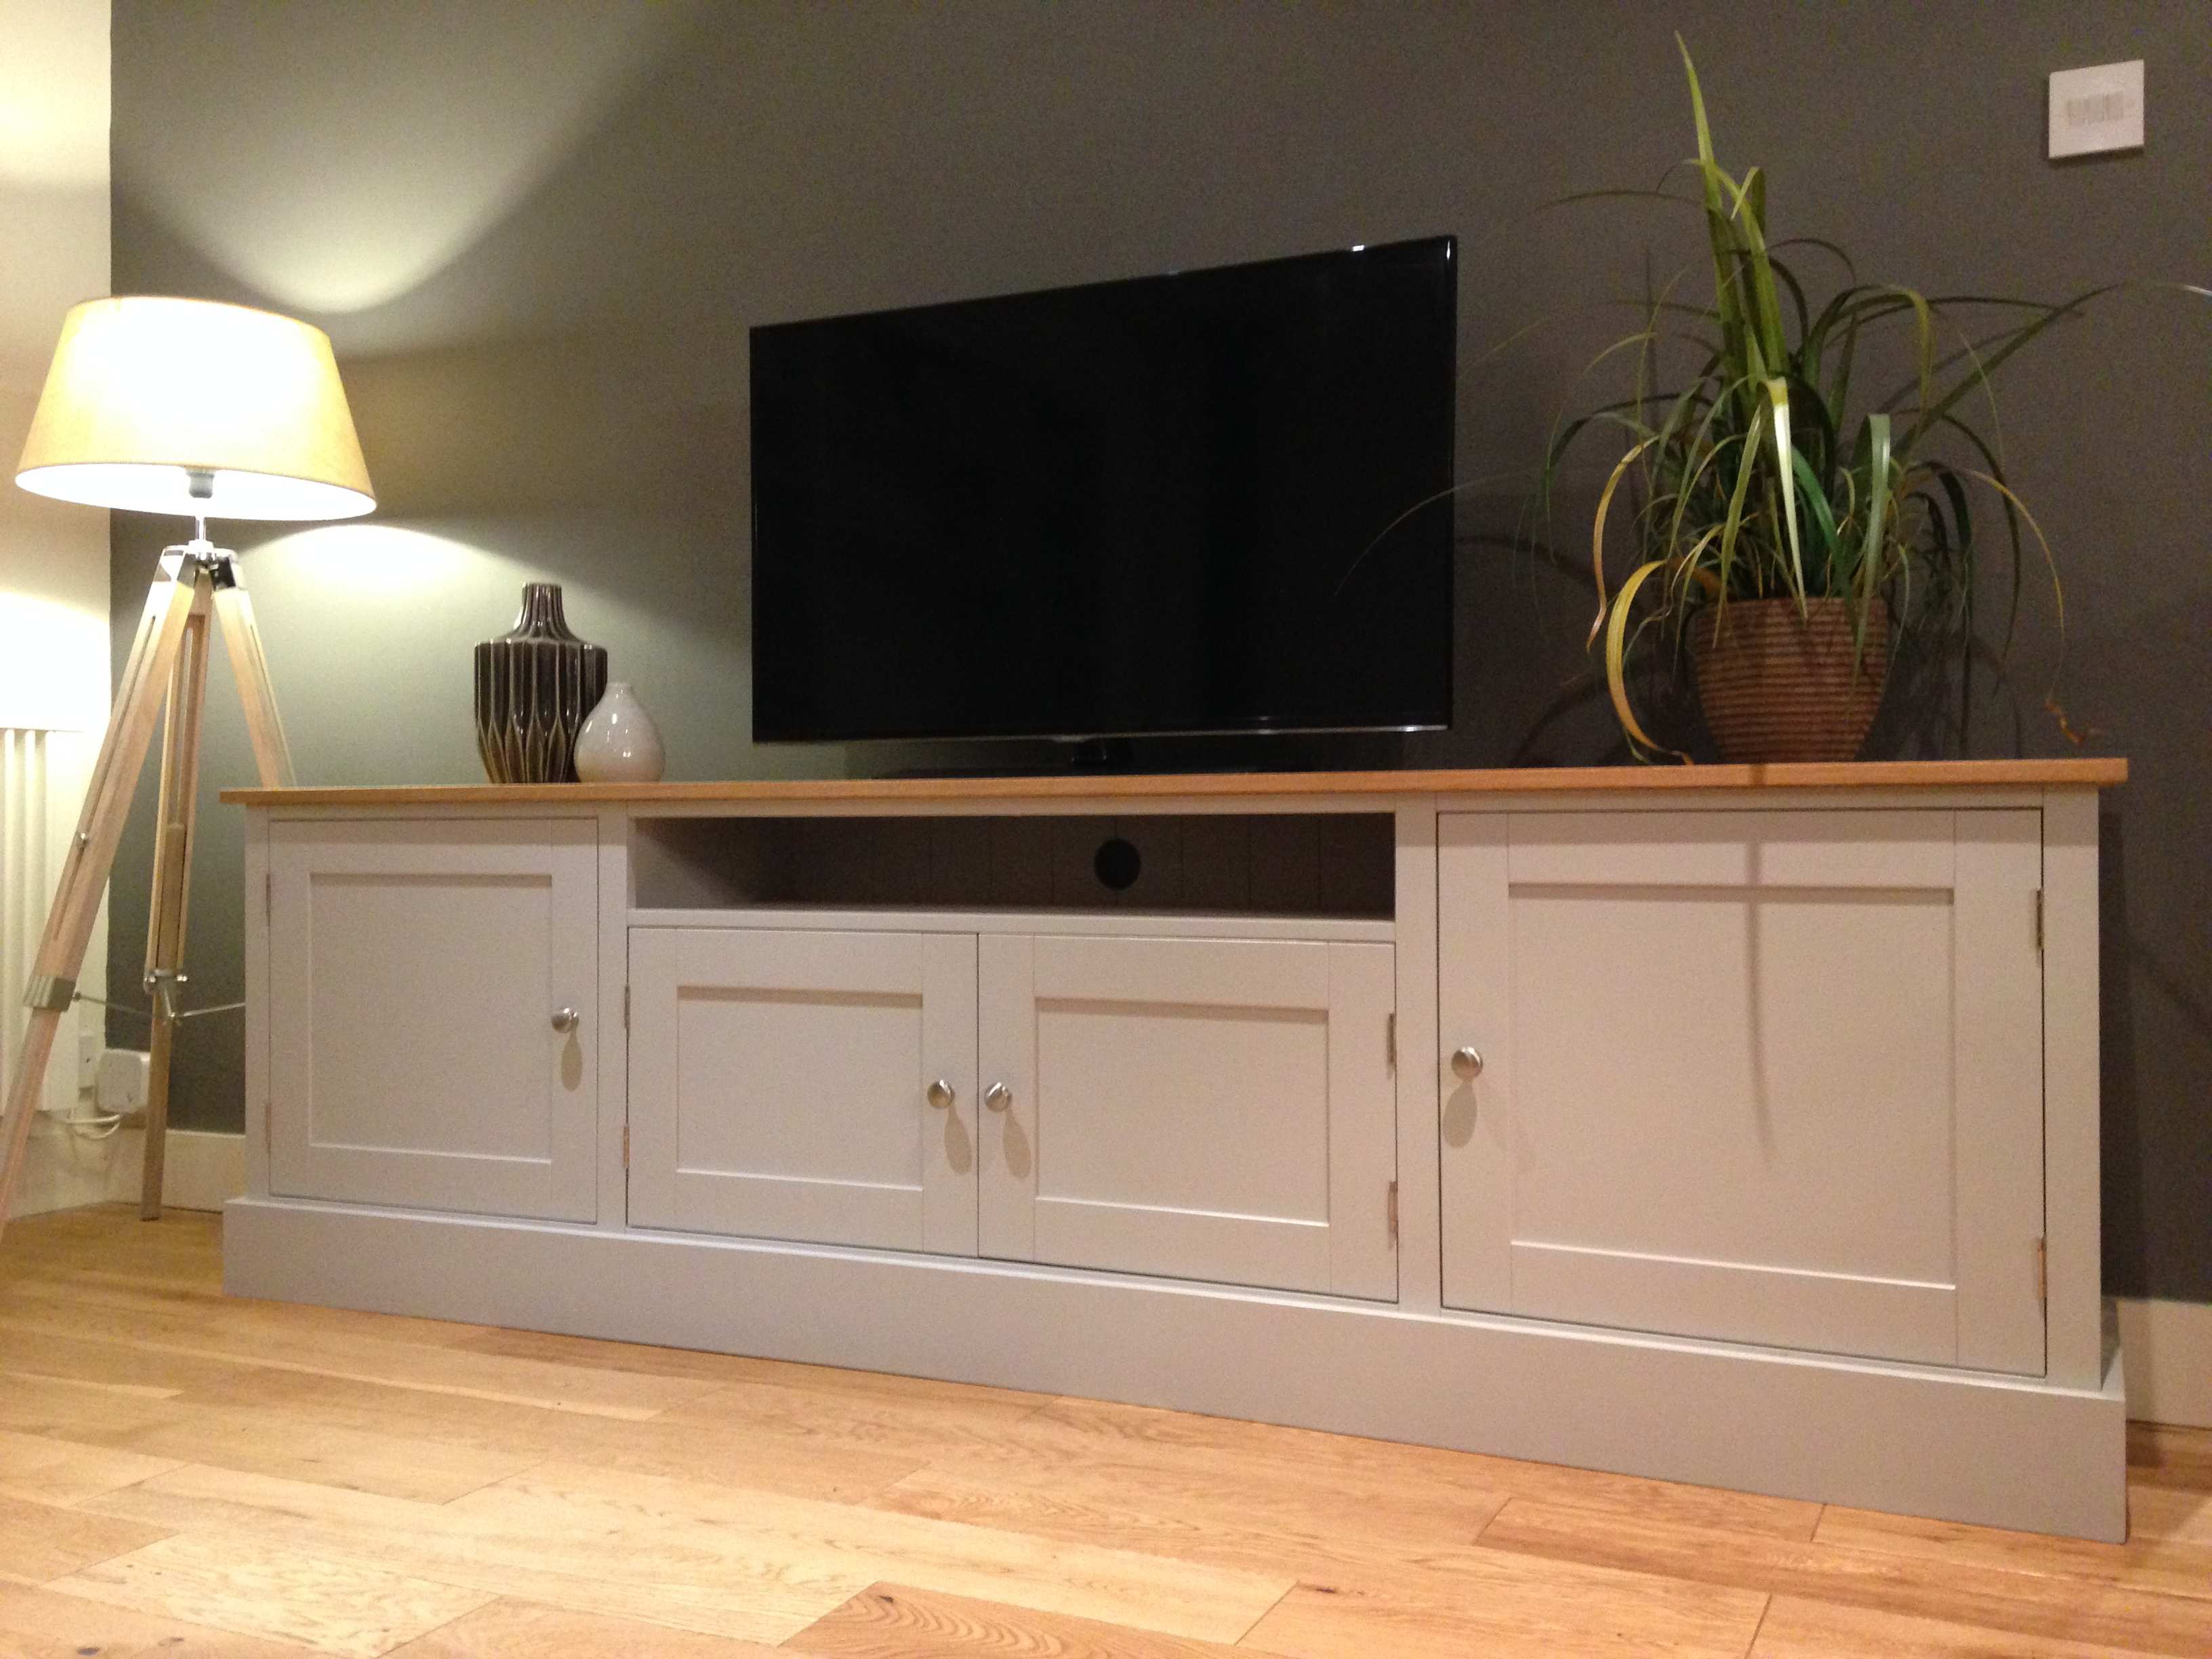 2018 7Ft Solid Pine & Oak Tv Unit – Nest At Number 20 For Wide Oak Tv Units (View 2 of 20)